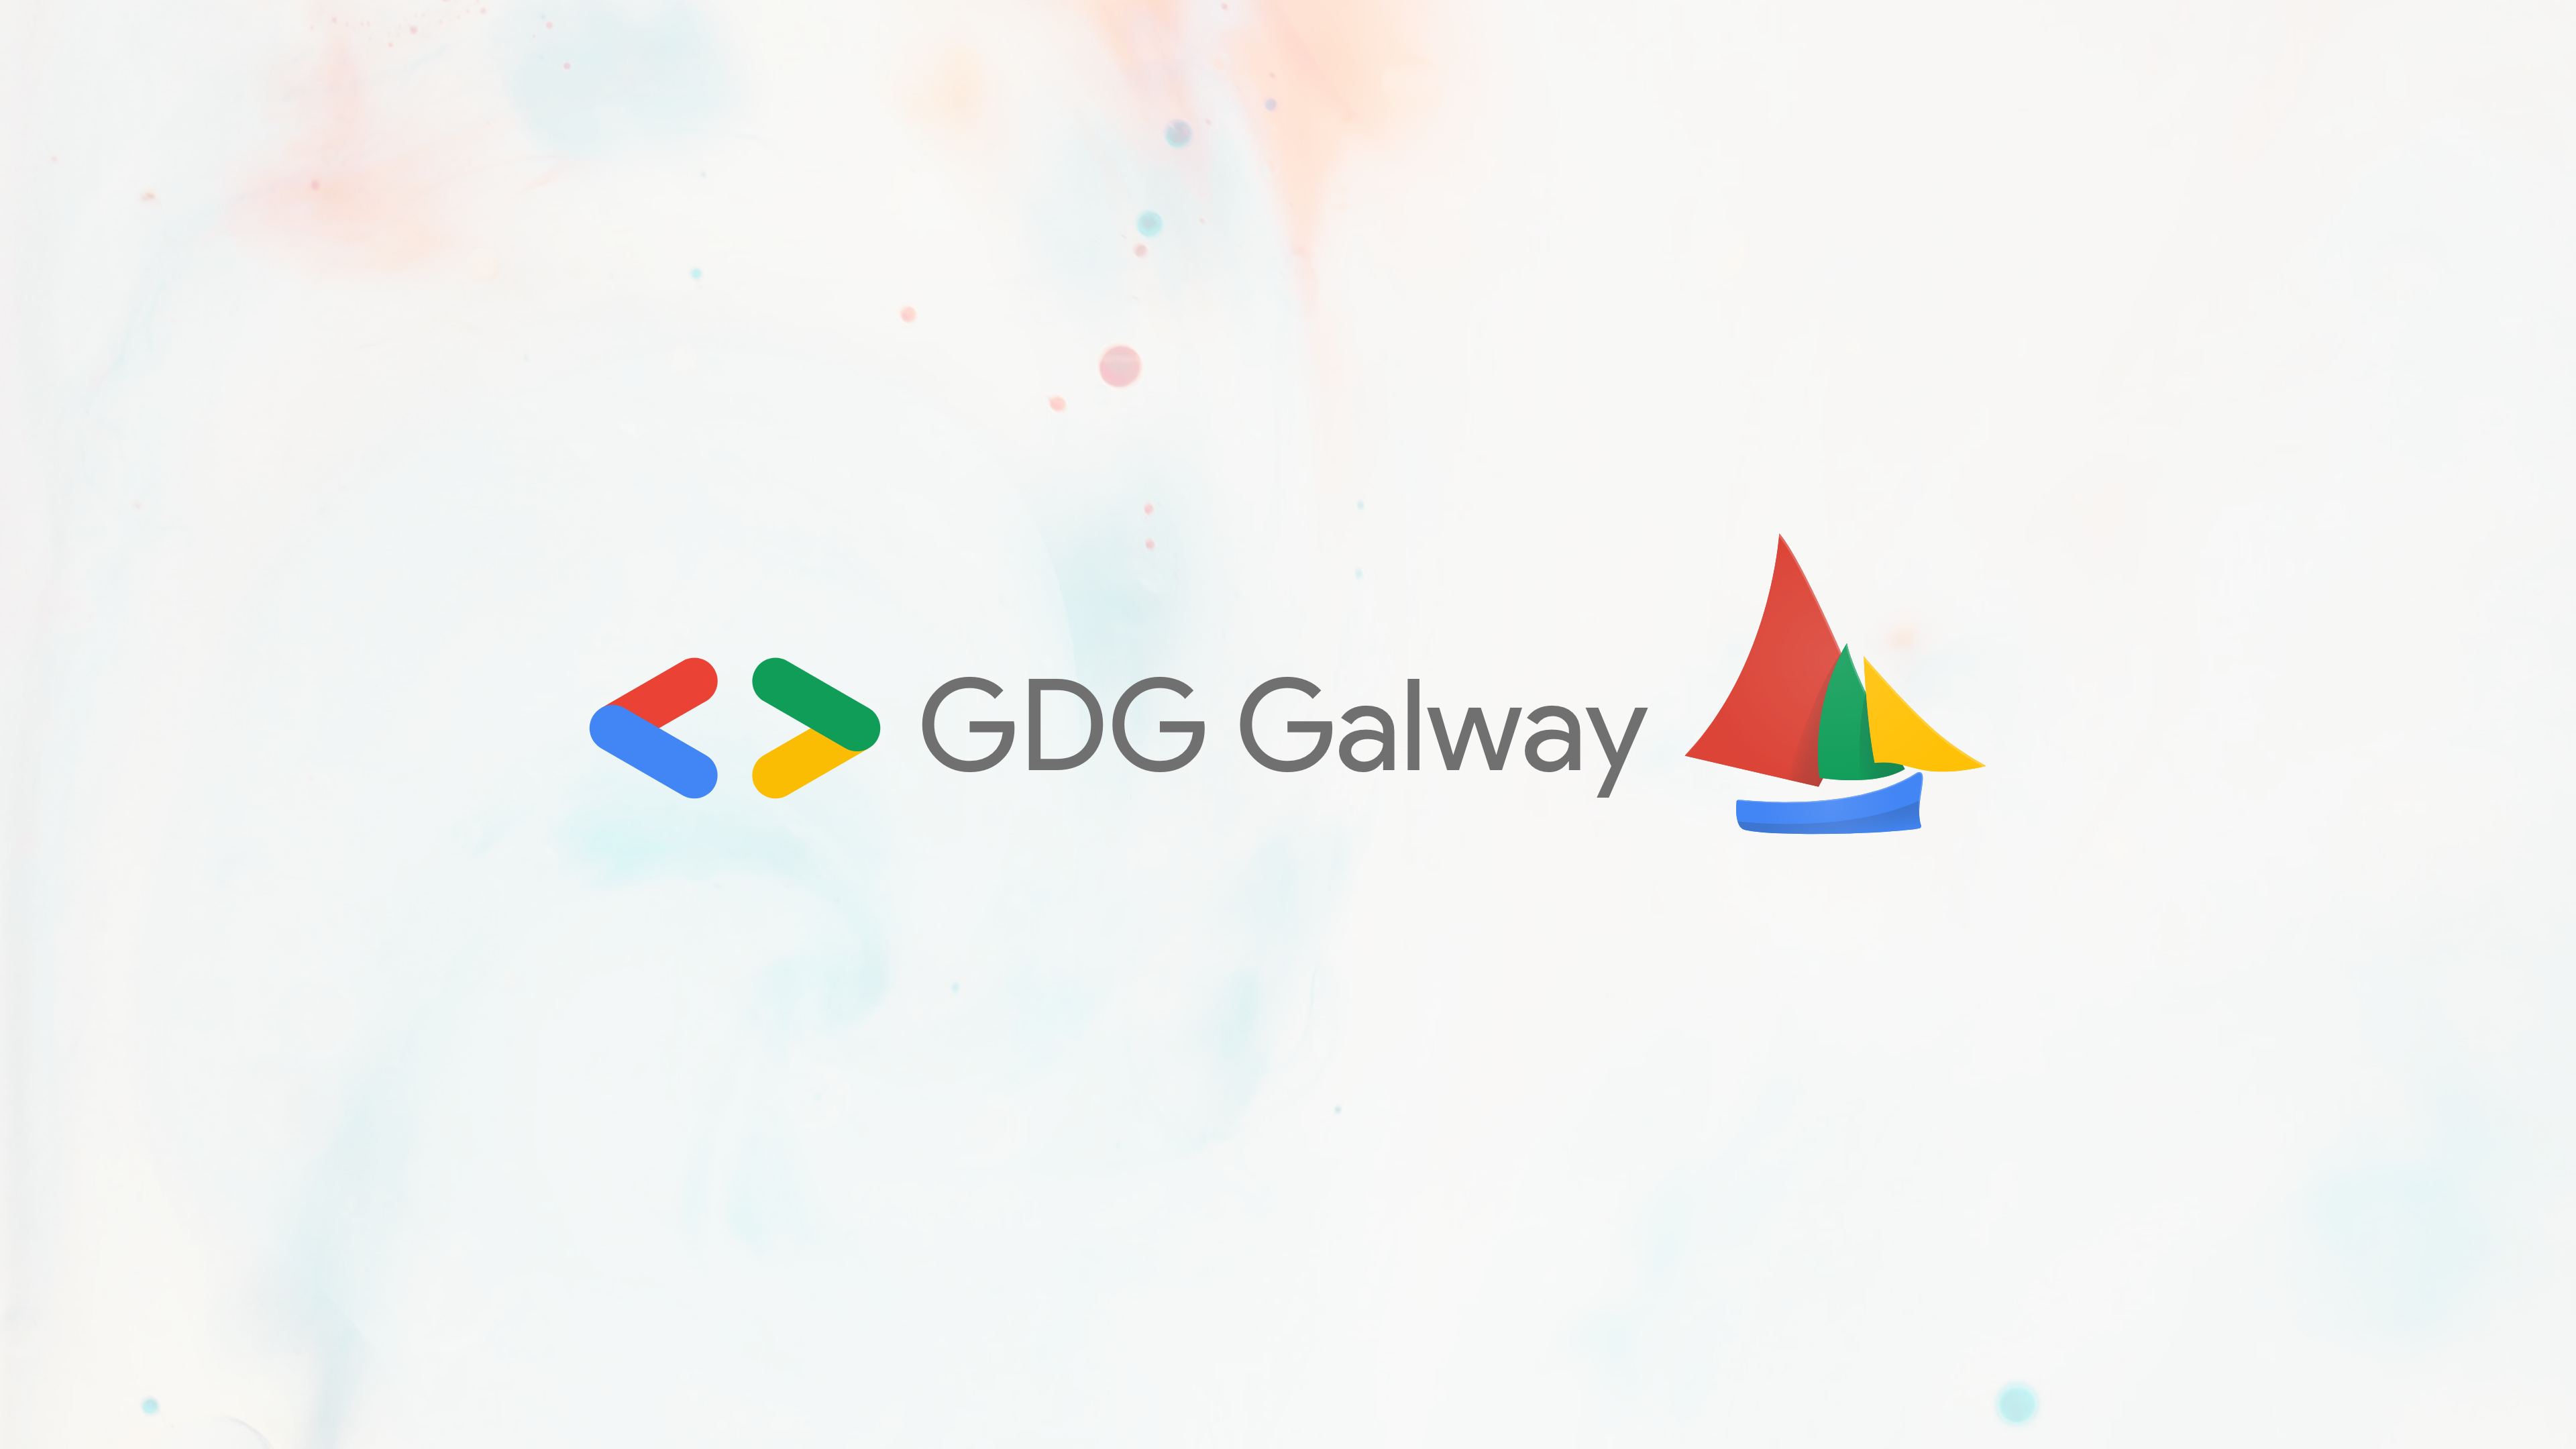 GDG Galway